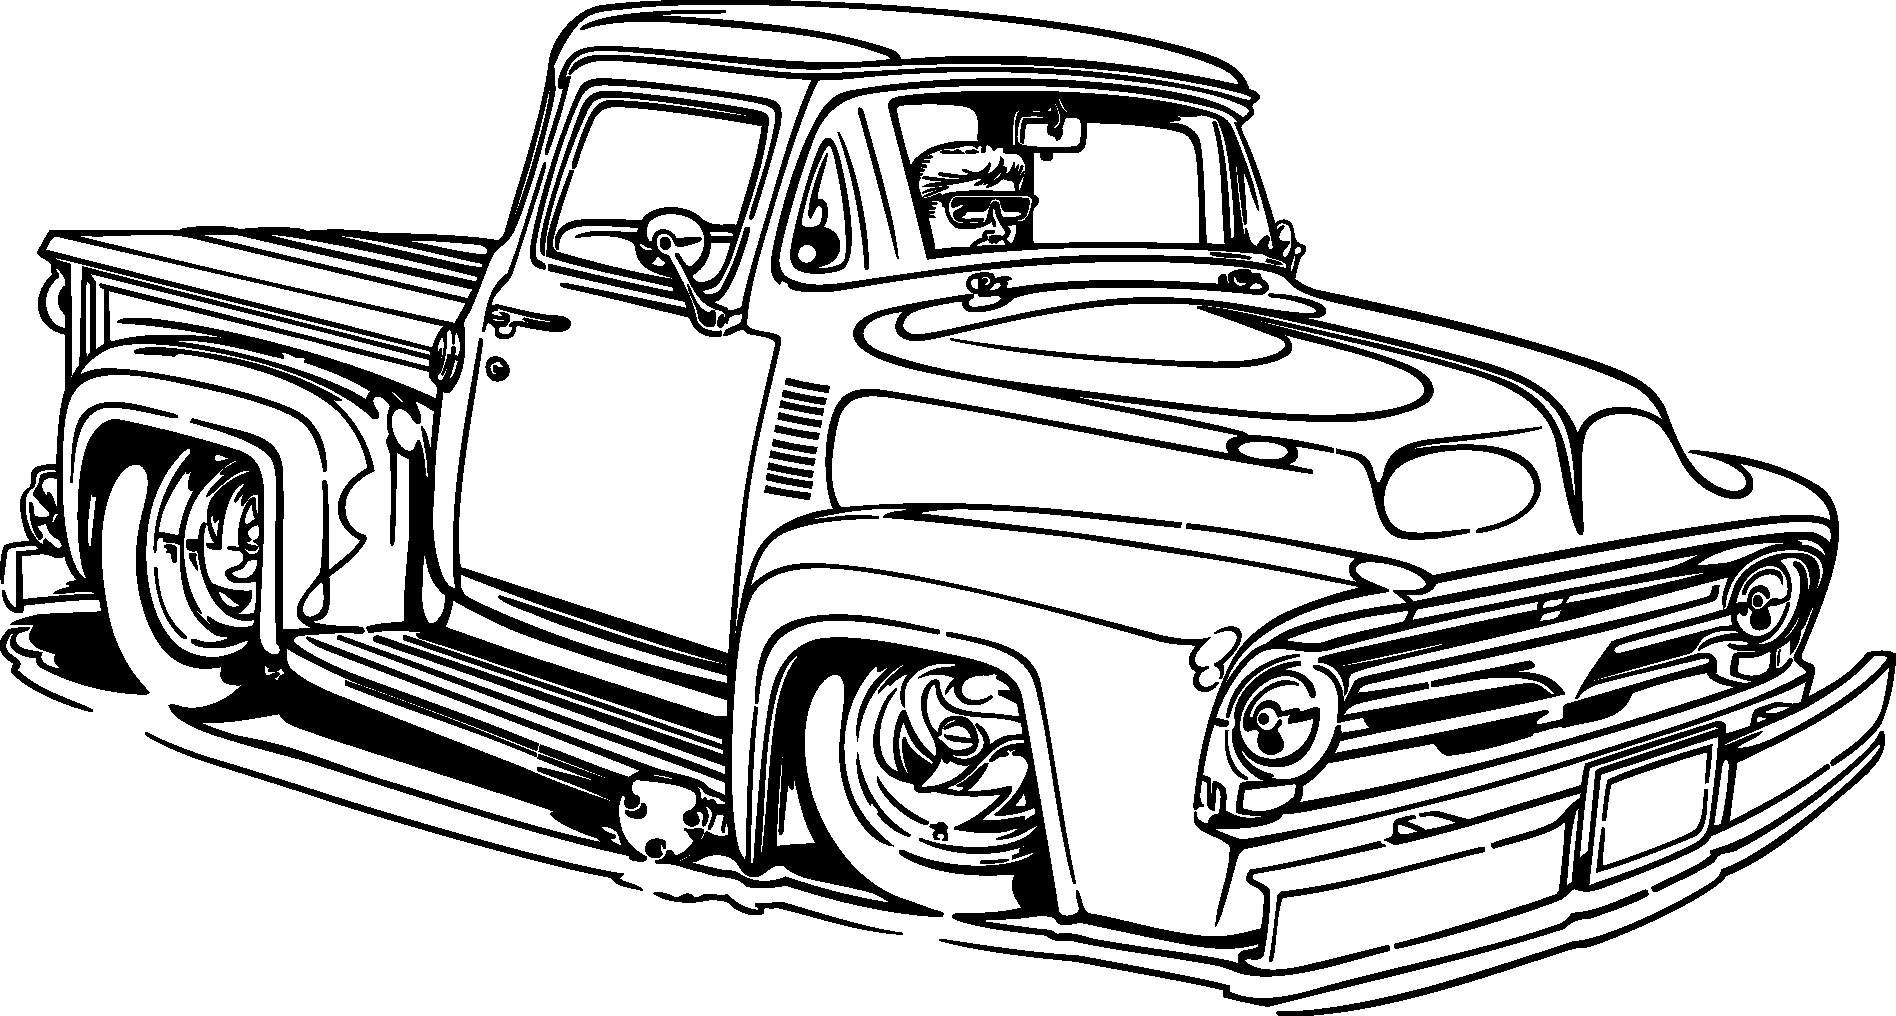 Vintage car clipart vector banner royalty free Classic Car Silhouette at GetDrawings.com | Free for personal use ... banner royalty free